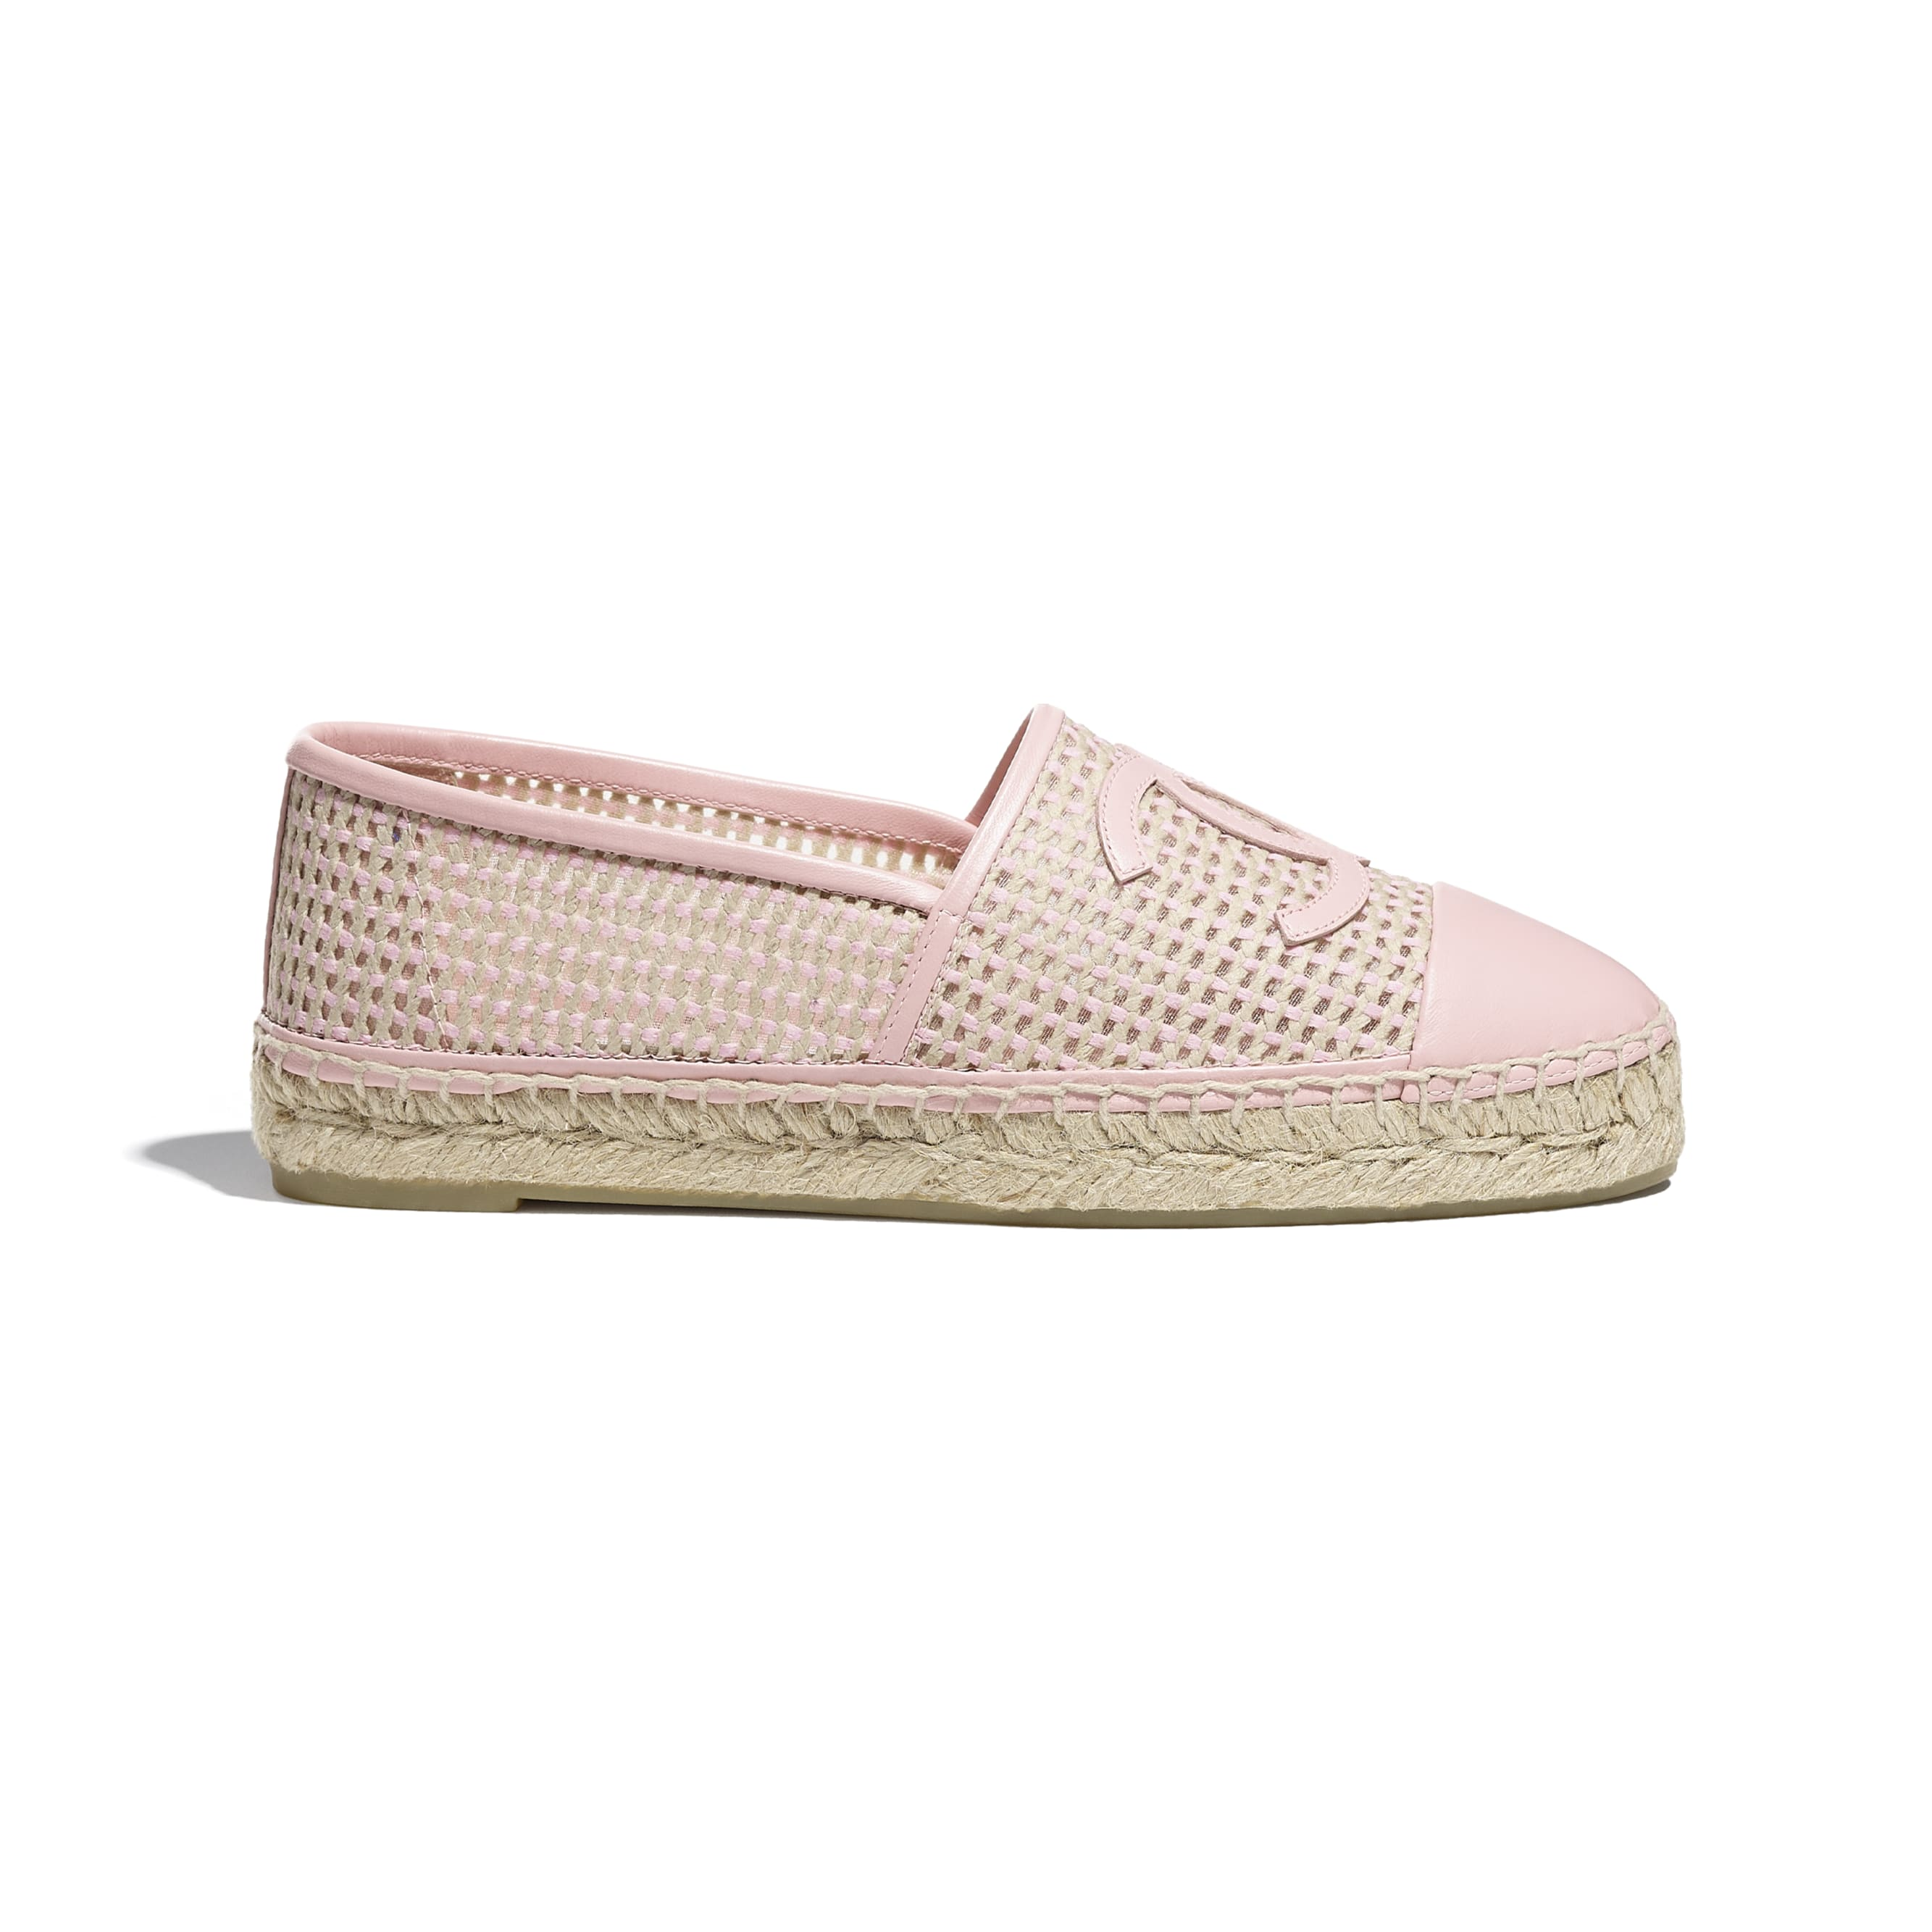 Espadrilles - Light Pink & Beige - Mesh & Lambskin - CHANEL - Default view - see standard sized version